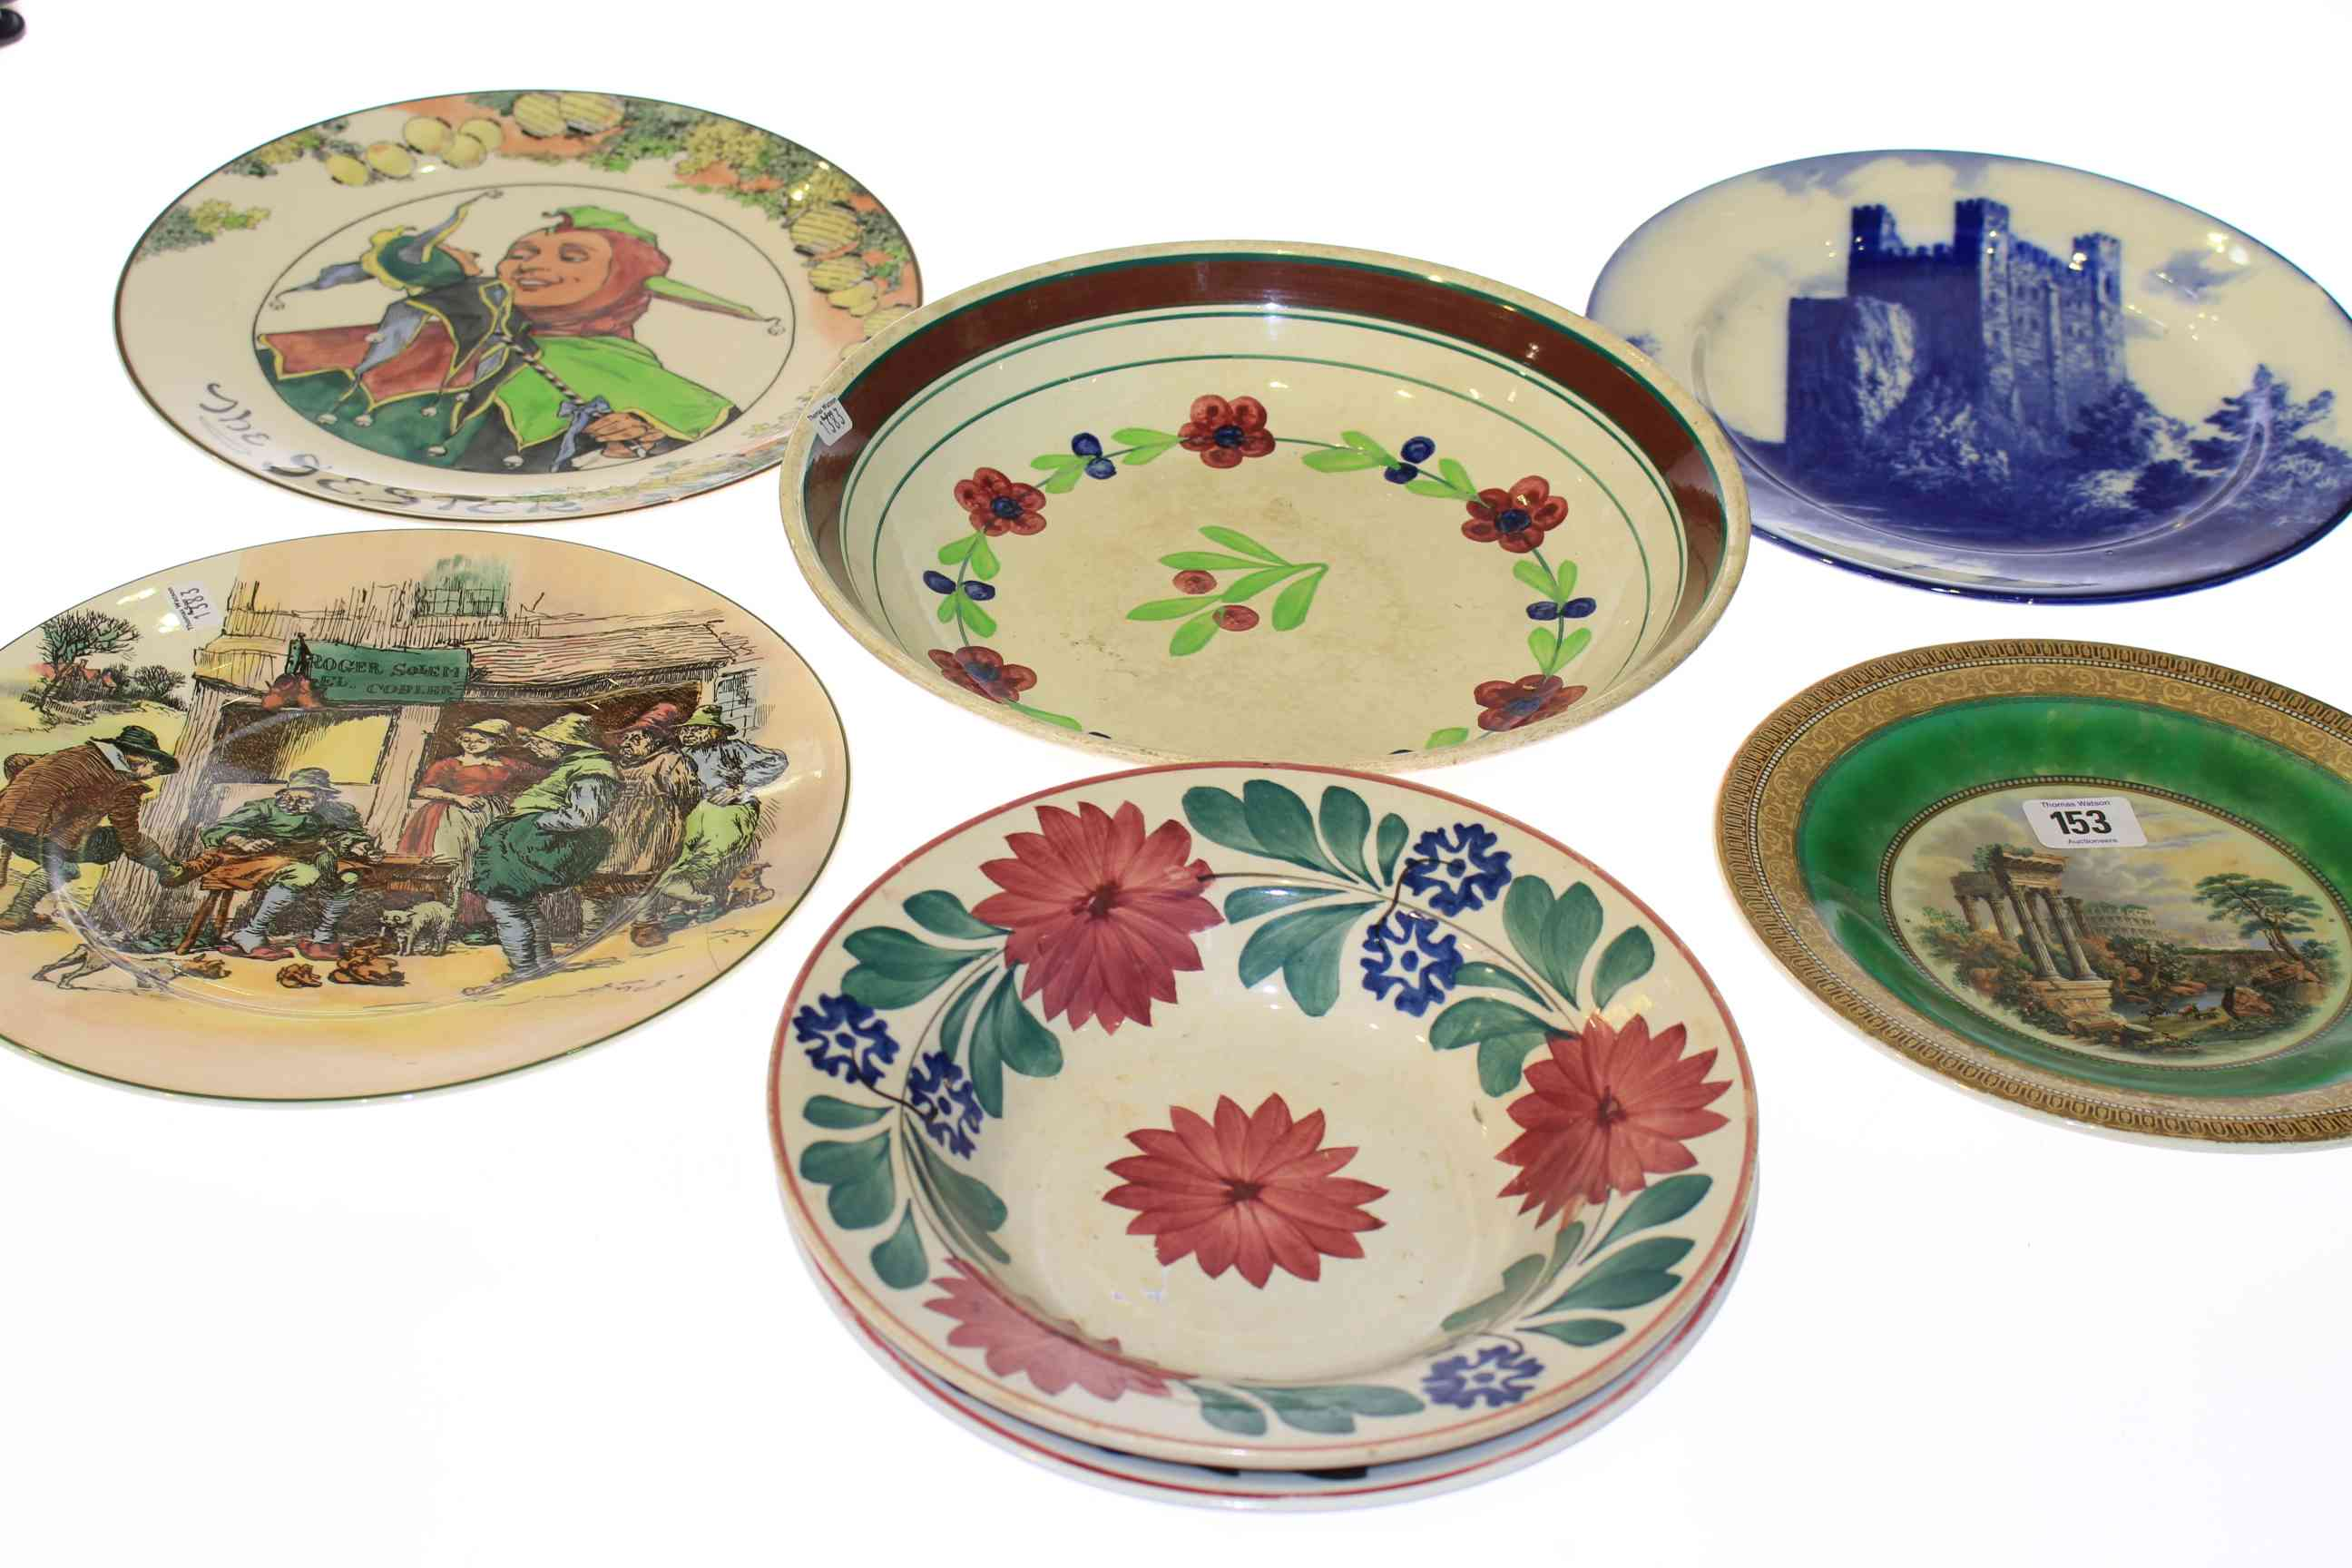 royal doulton plates price guide